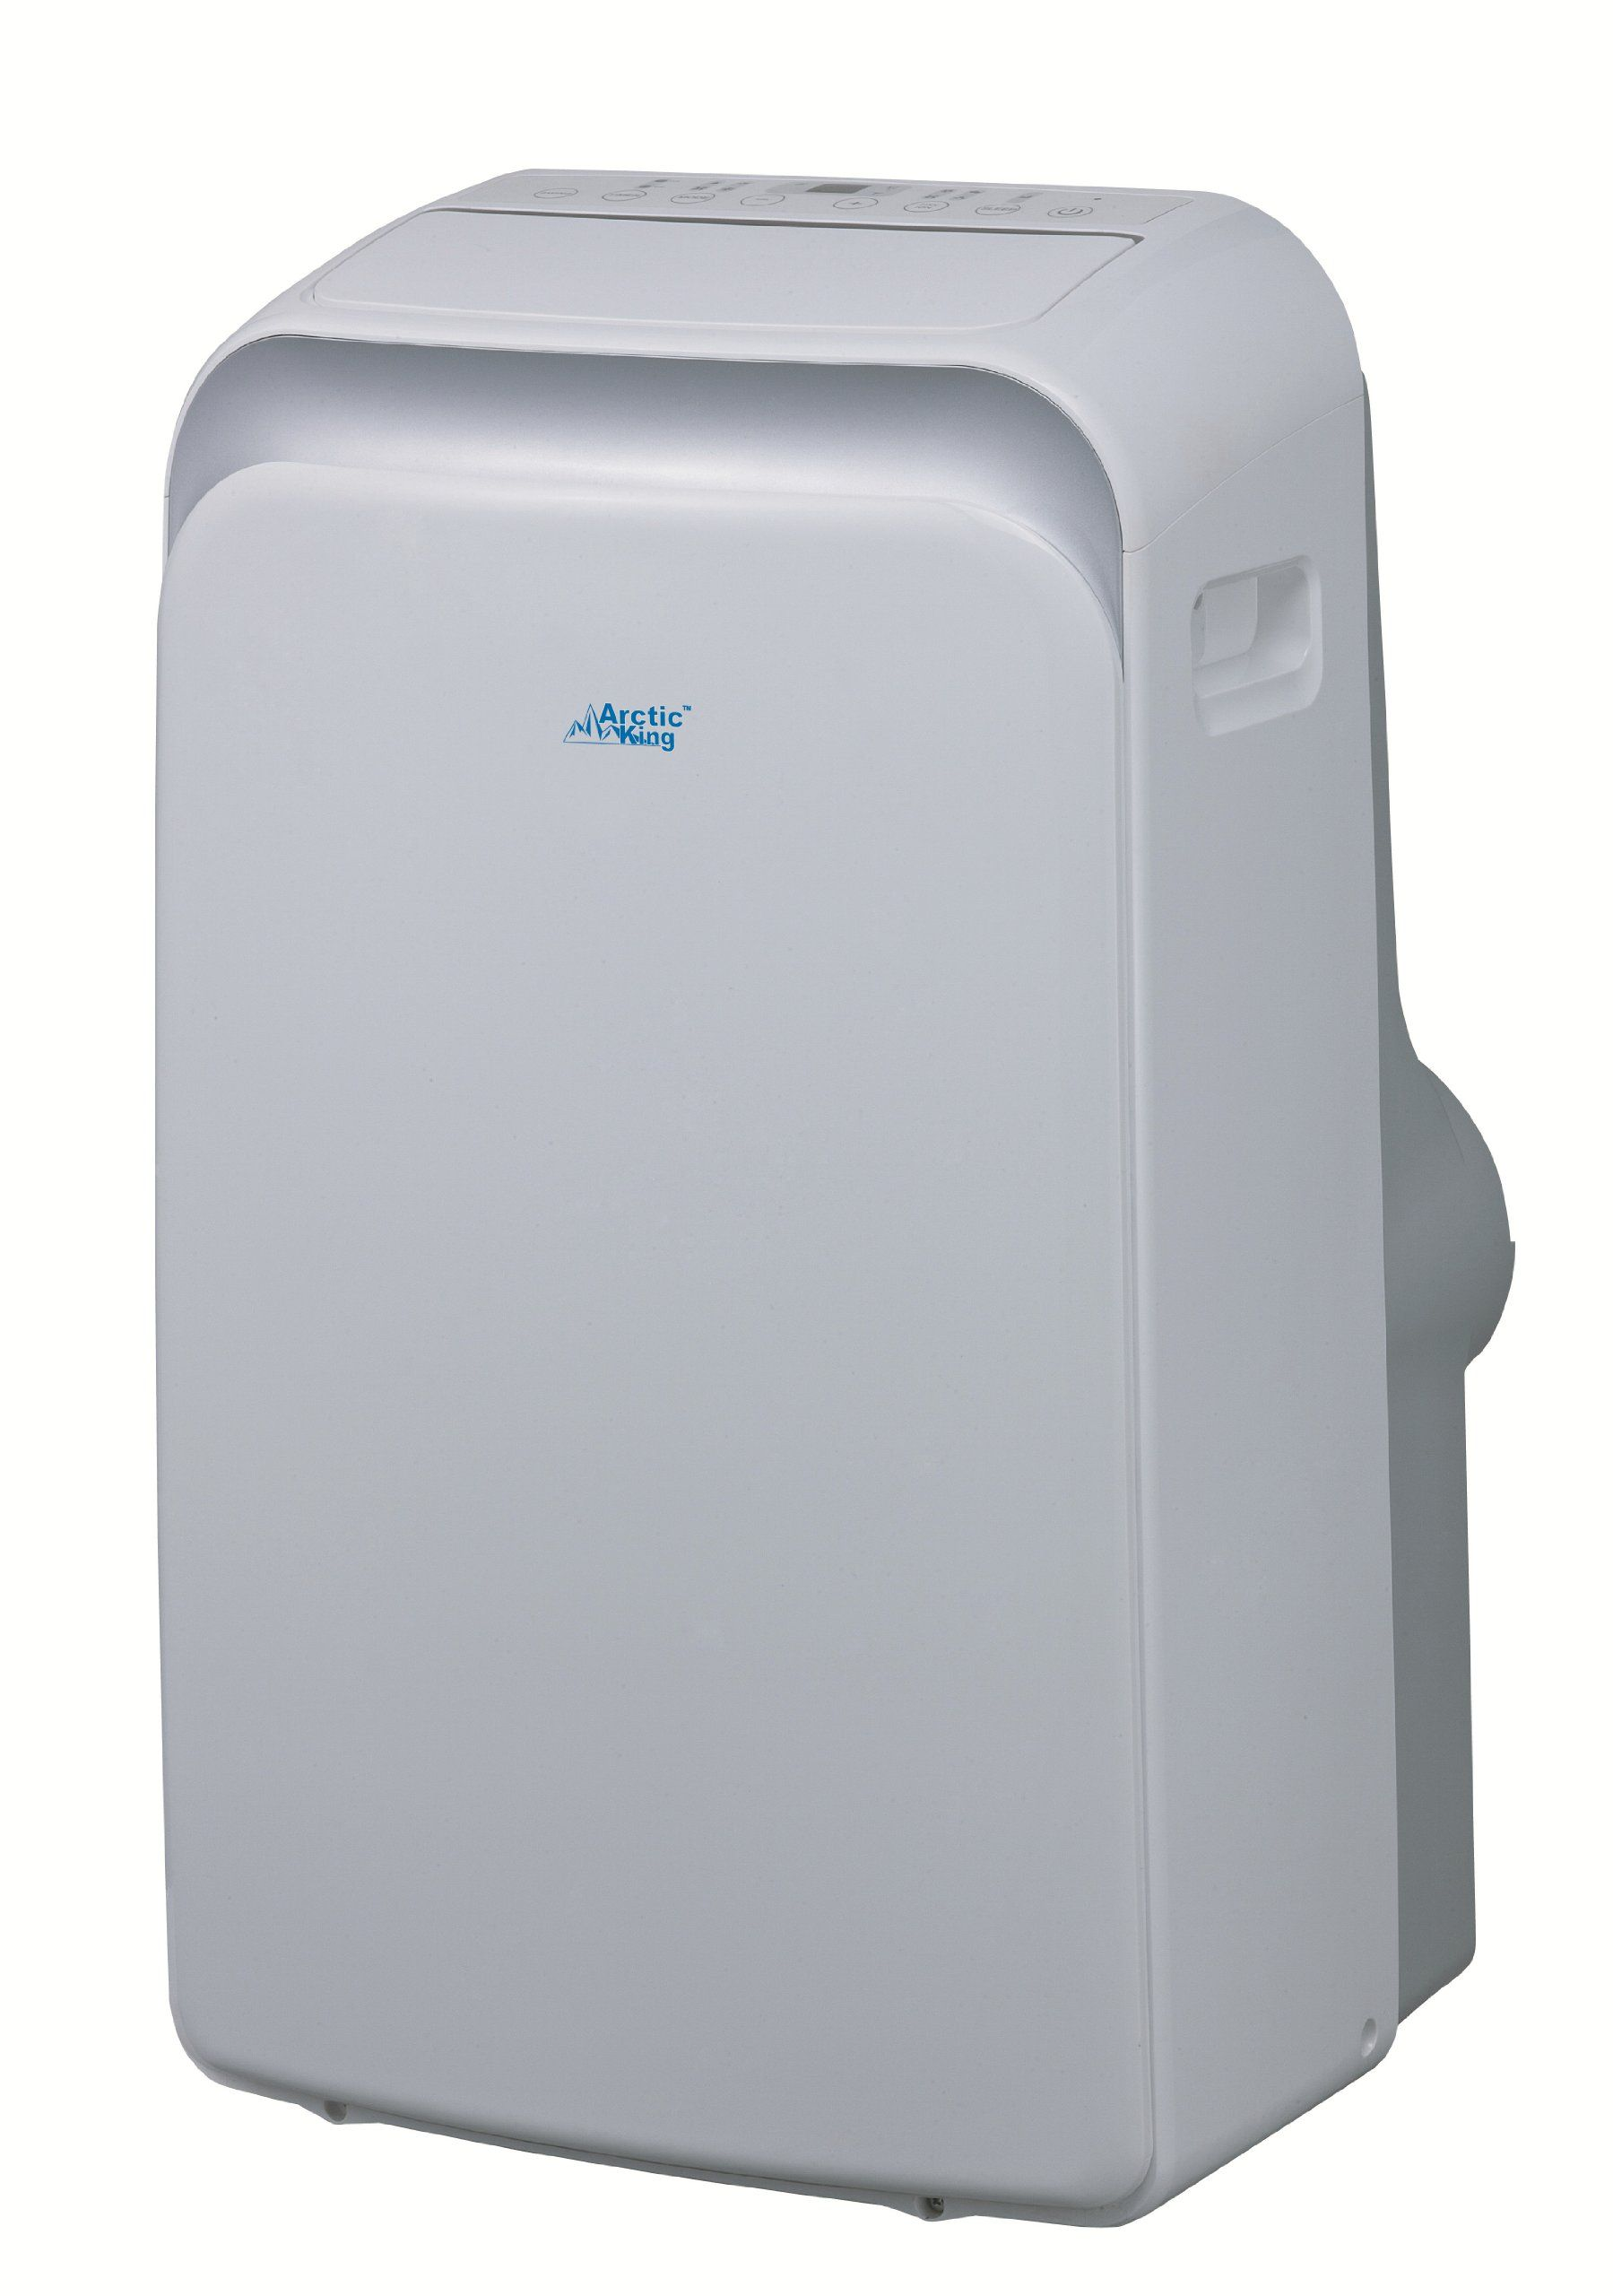 to our Window AC buying guide and reviews of the